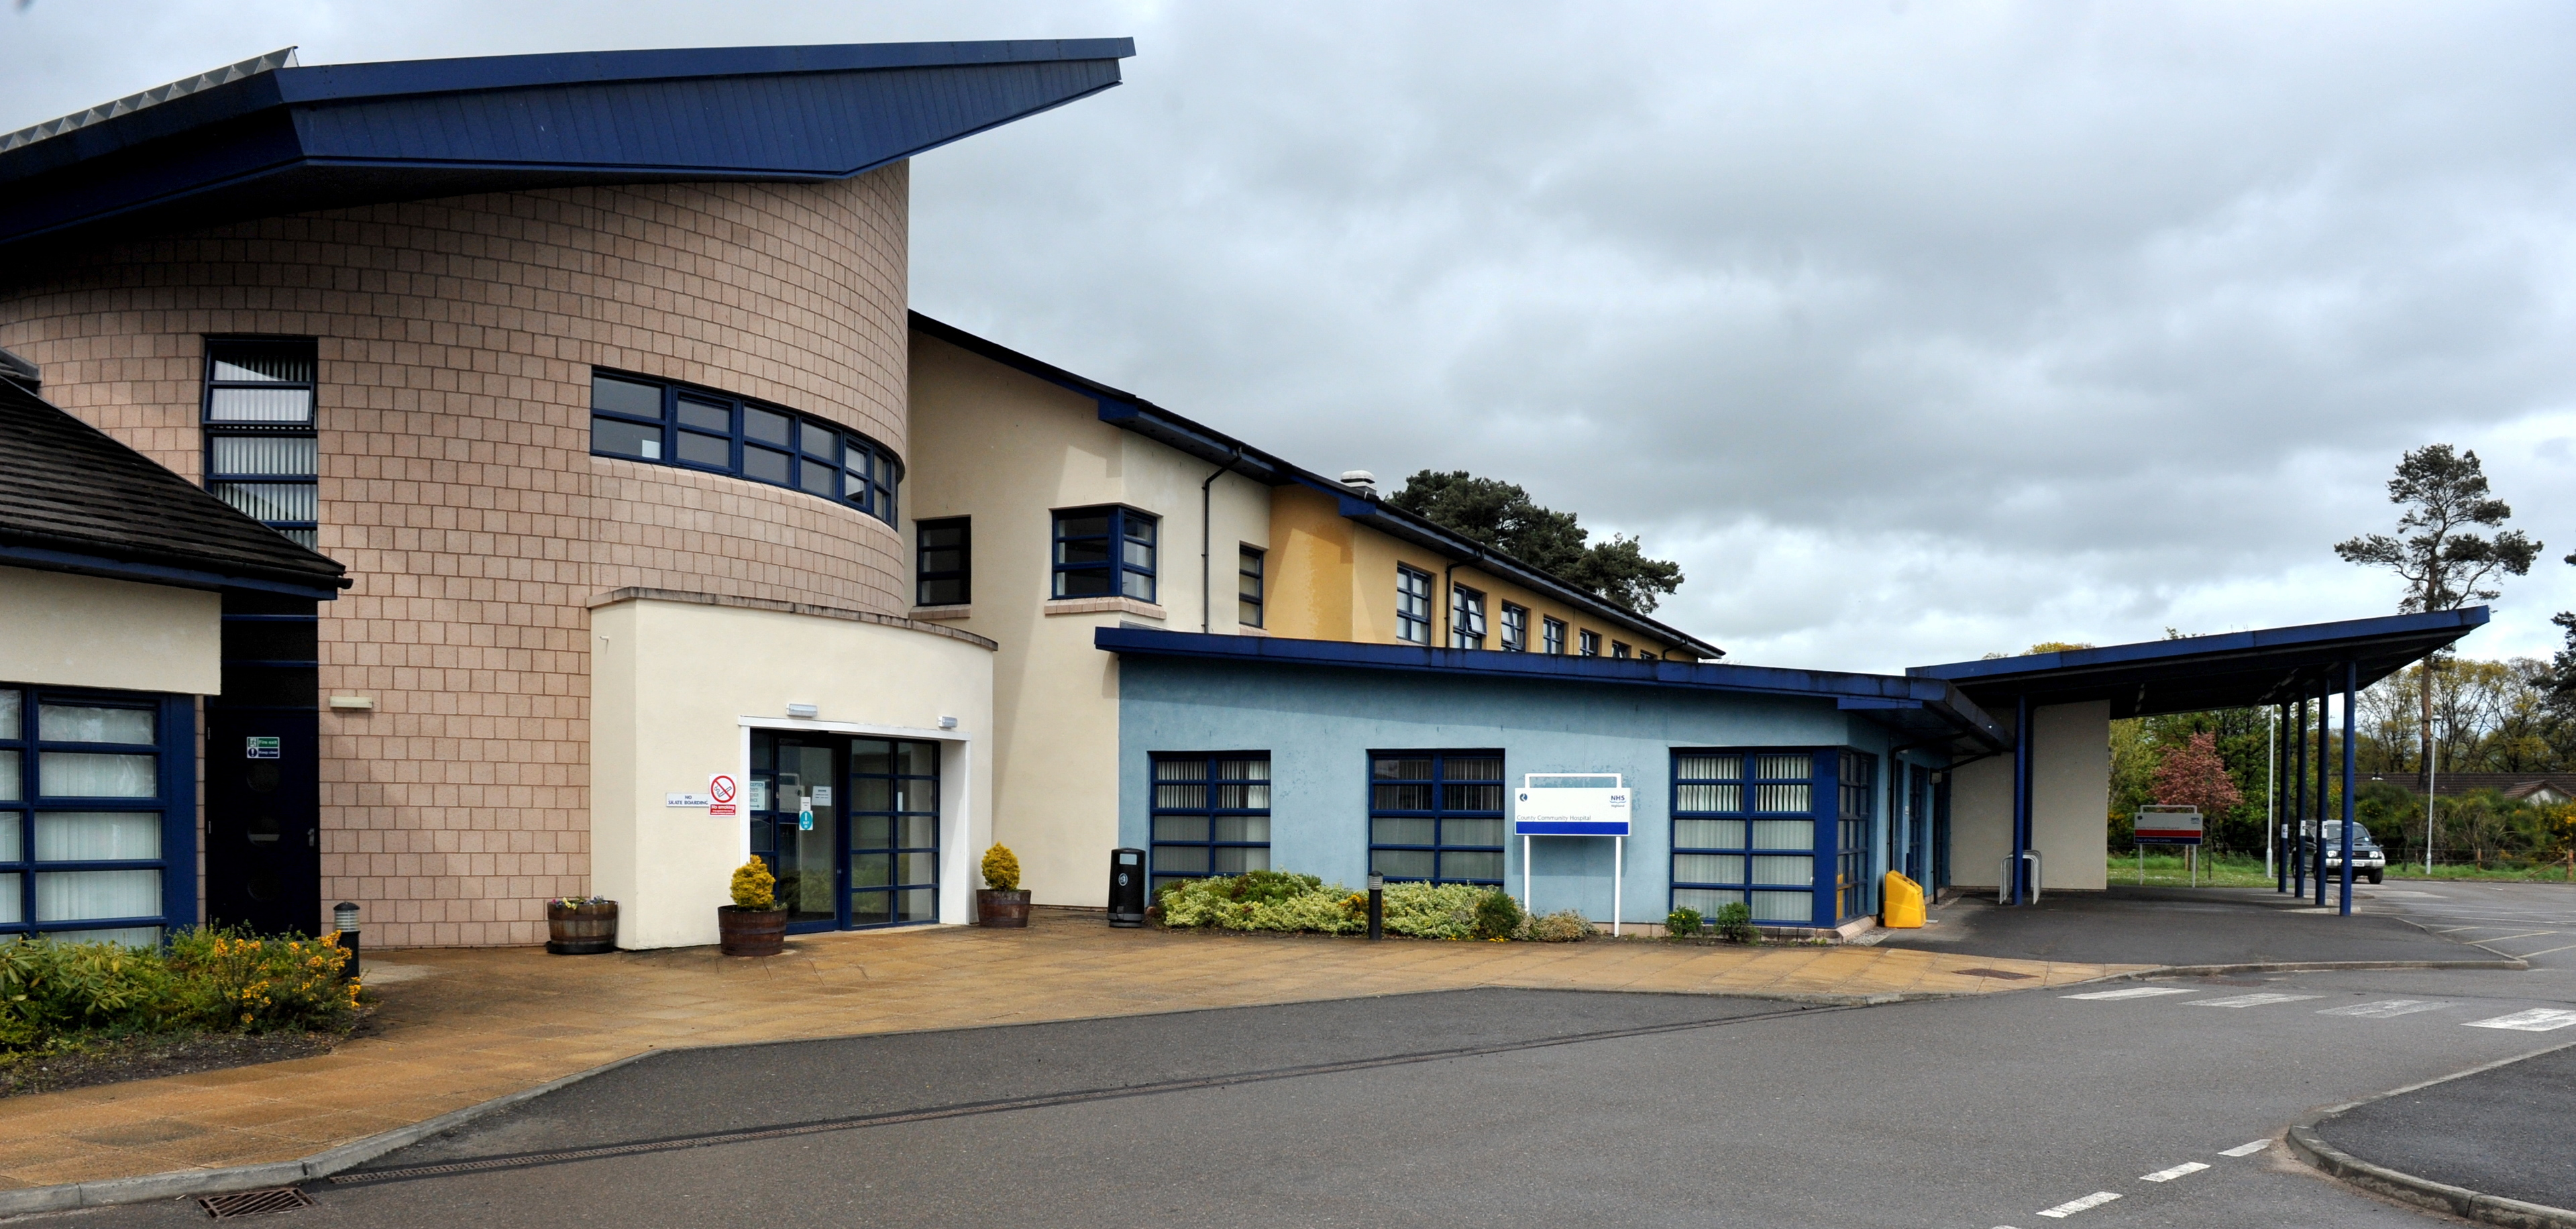 The Minor Injuries Unit at Invergordon Community Hospital will reopen in October 2020 by appointment only